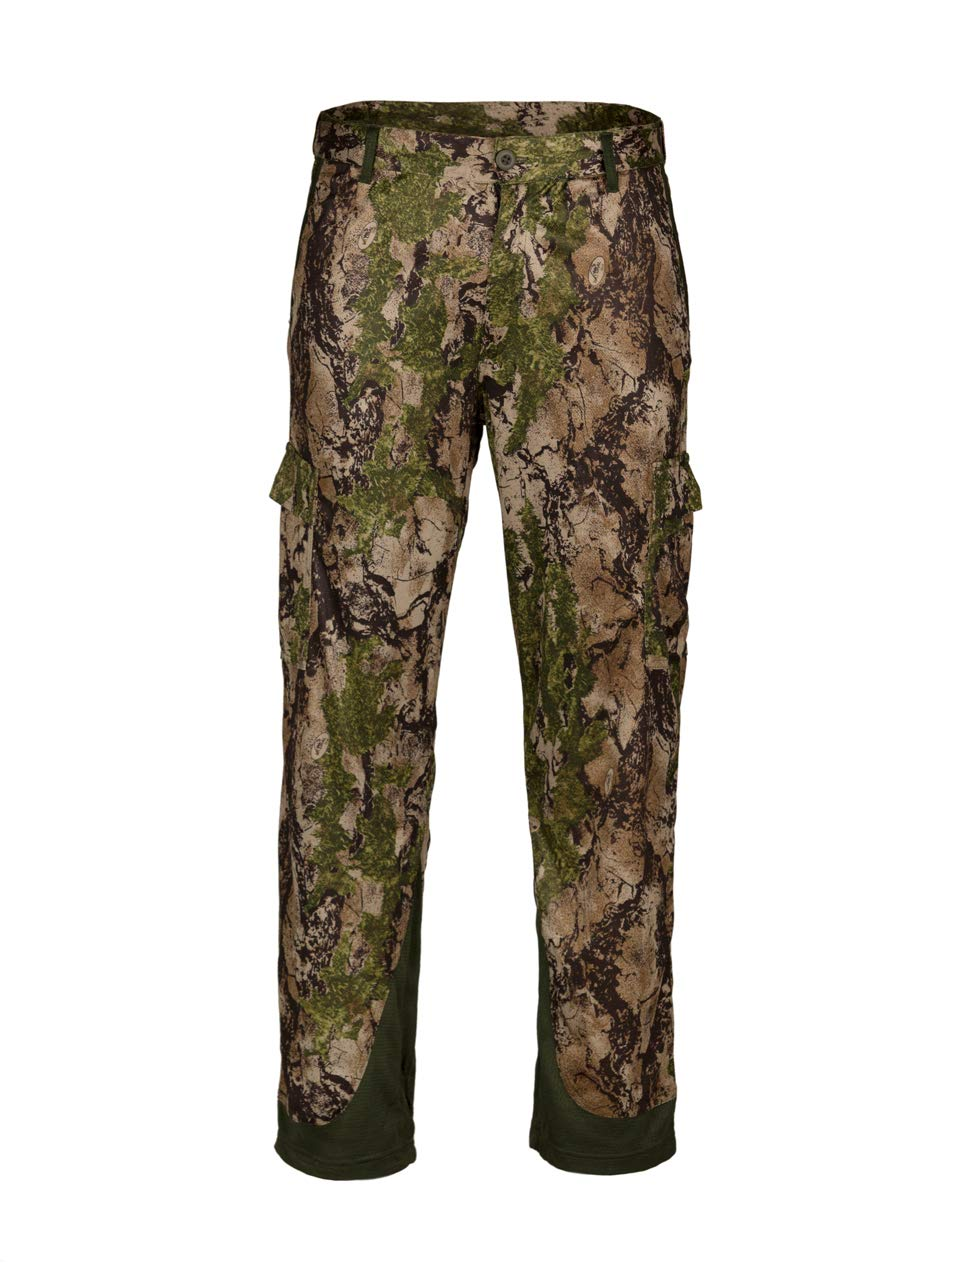 cf15041aca0d3 Amazon.com : Natural Gear Cool Tech Performance Pant SC2, Camo Pants for  Men, Spring Hunting Quick-Dry Pants Made from 100% Polyester : Clothing